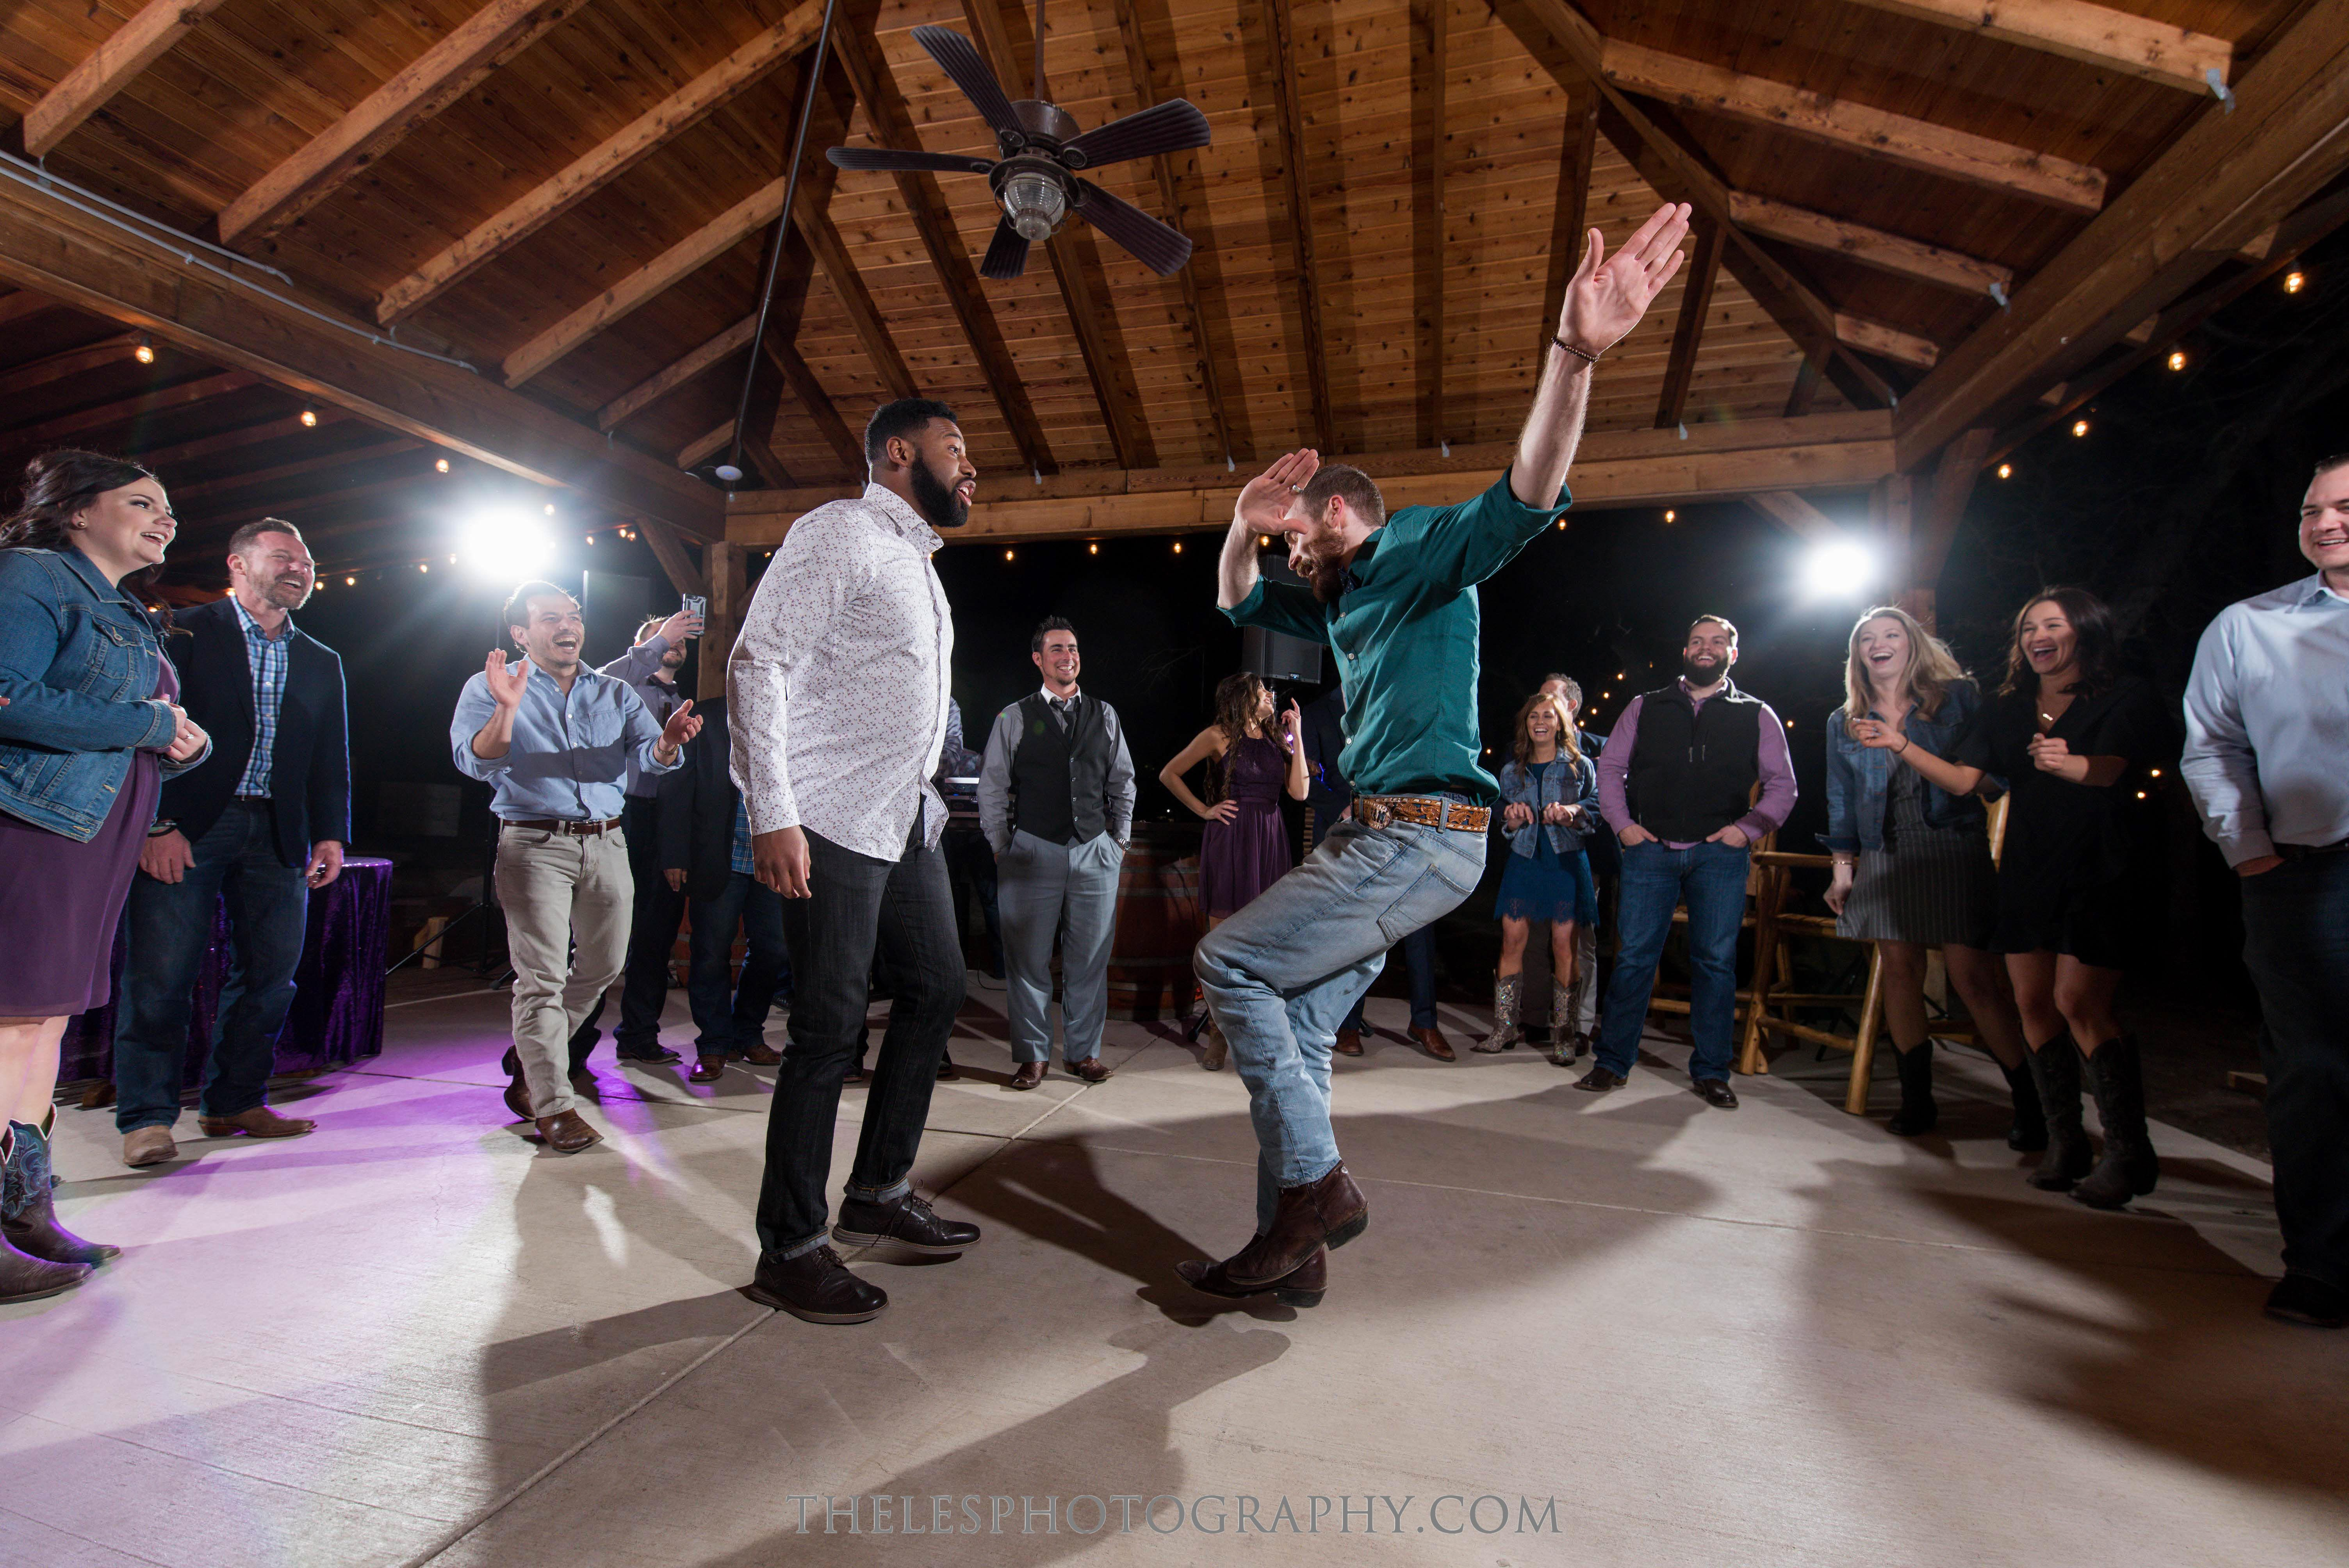 127 Dallas Wedding Photography - Photographer - The Les Photography - Fort Country Memories Wedding